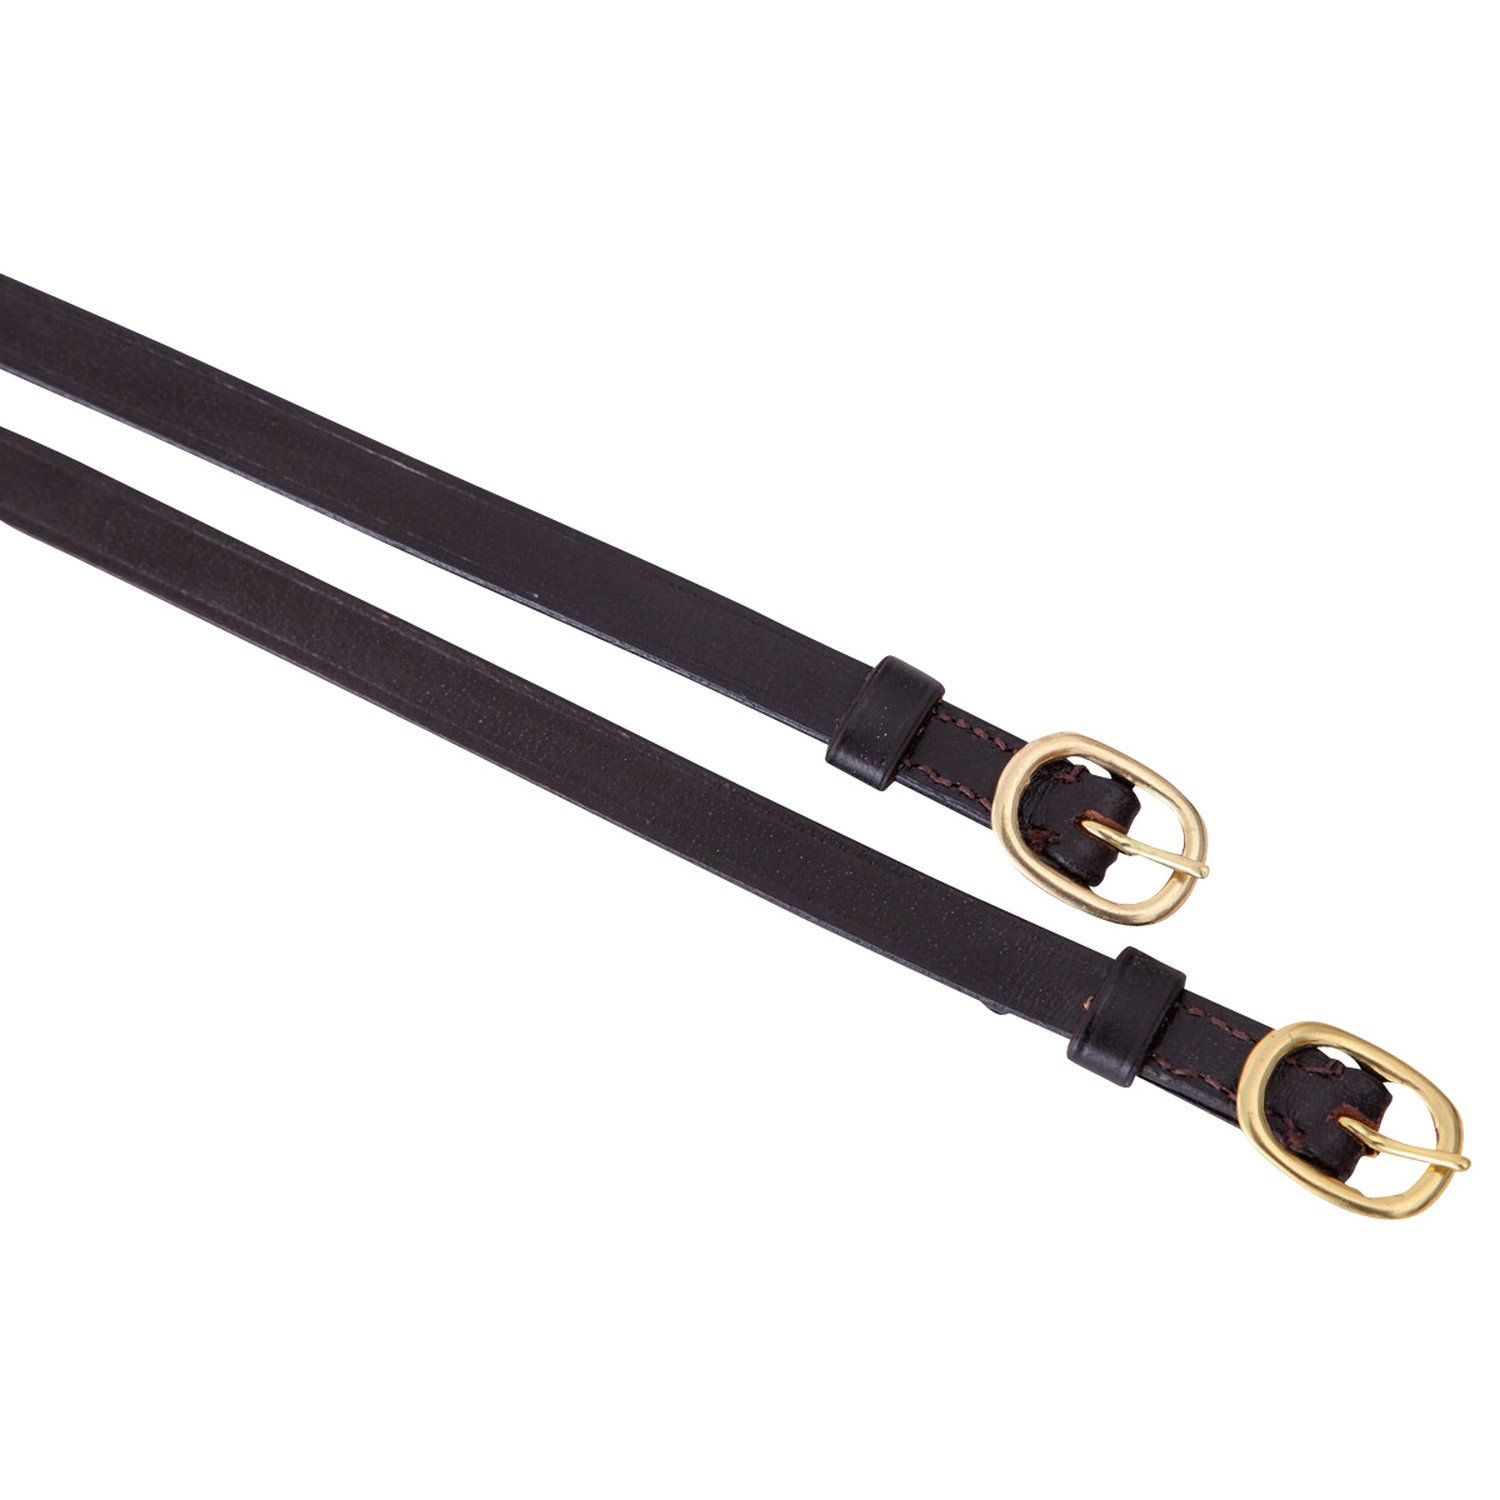 Shires Equestrian Brown Leather Spur Straps